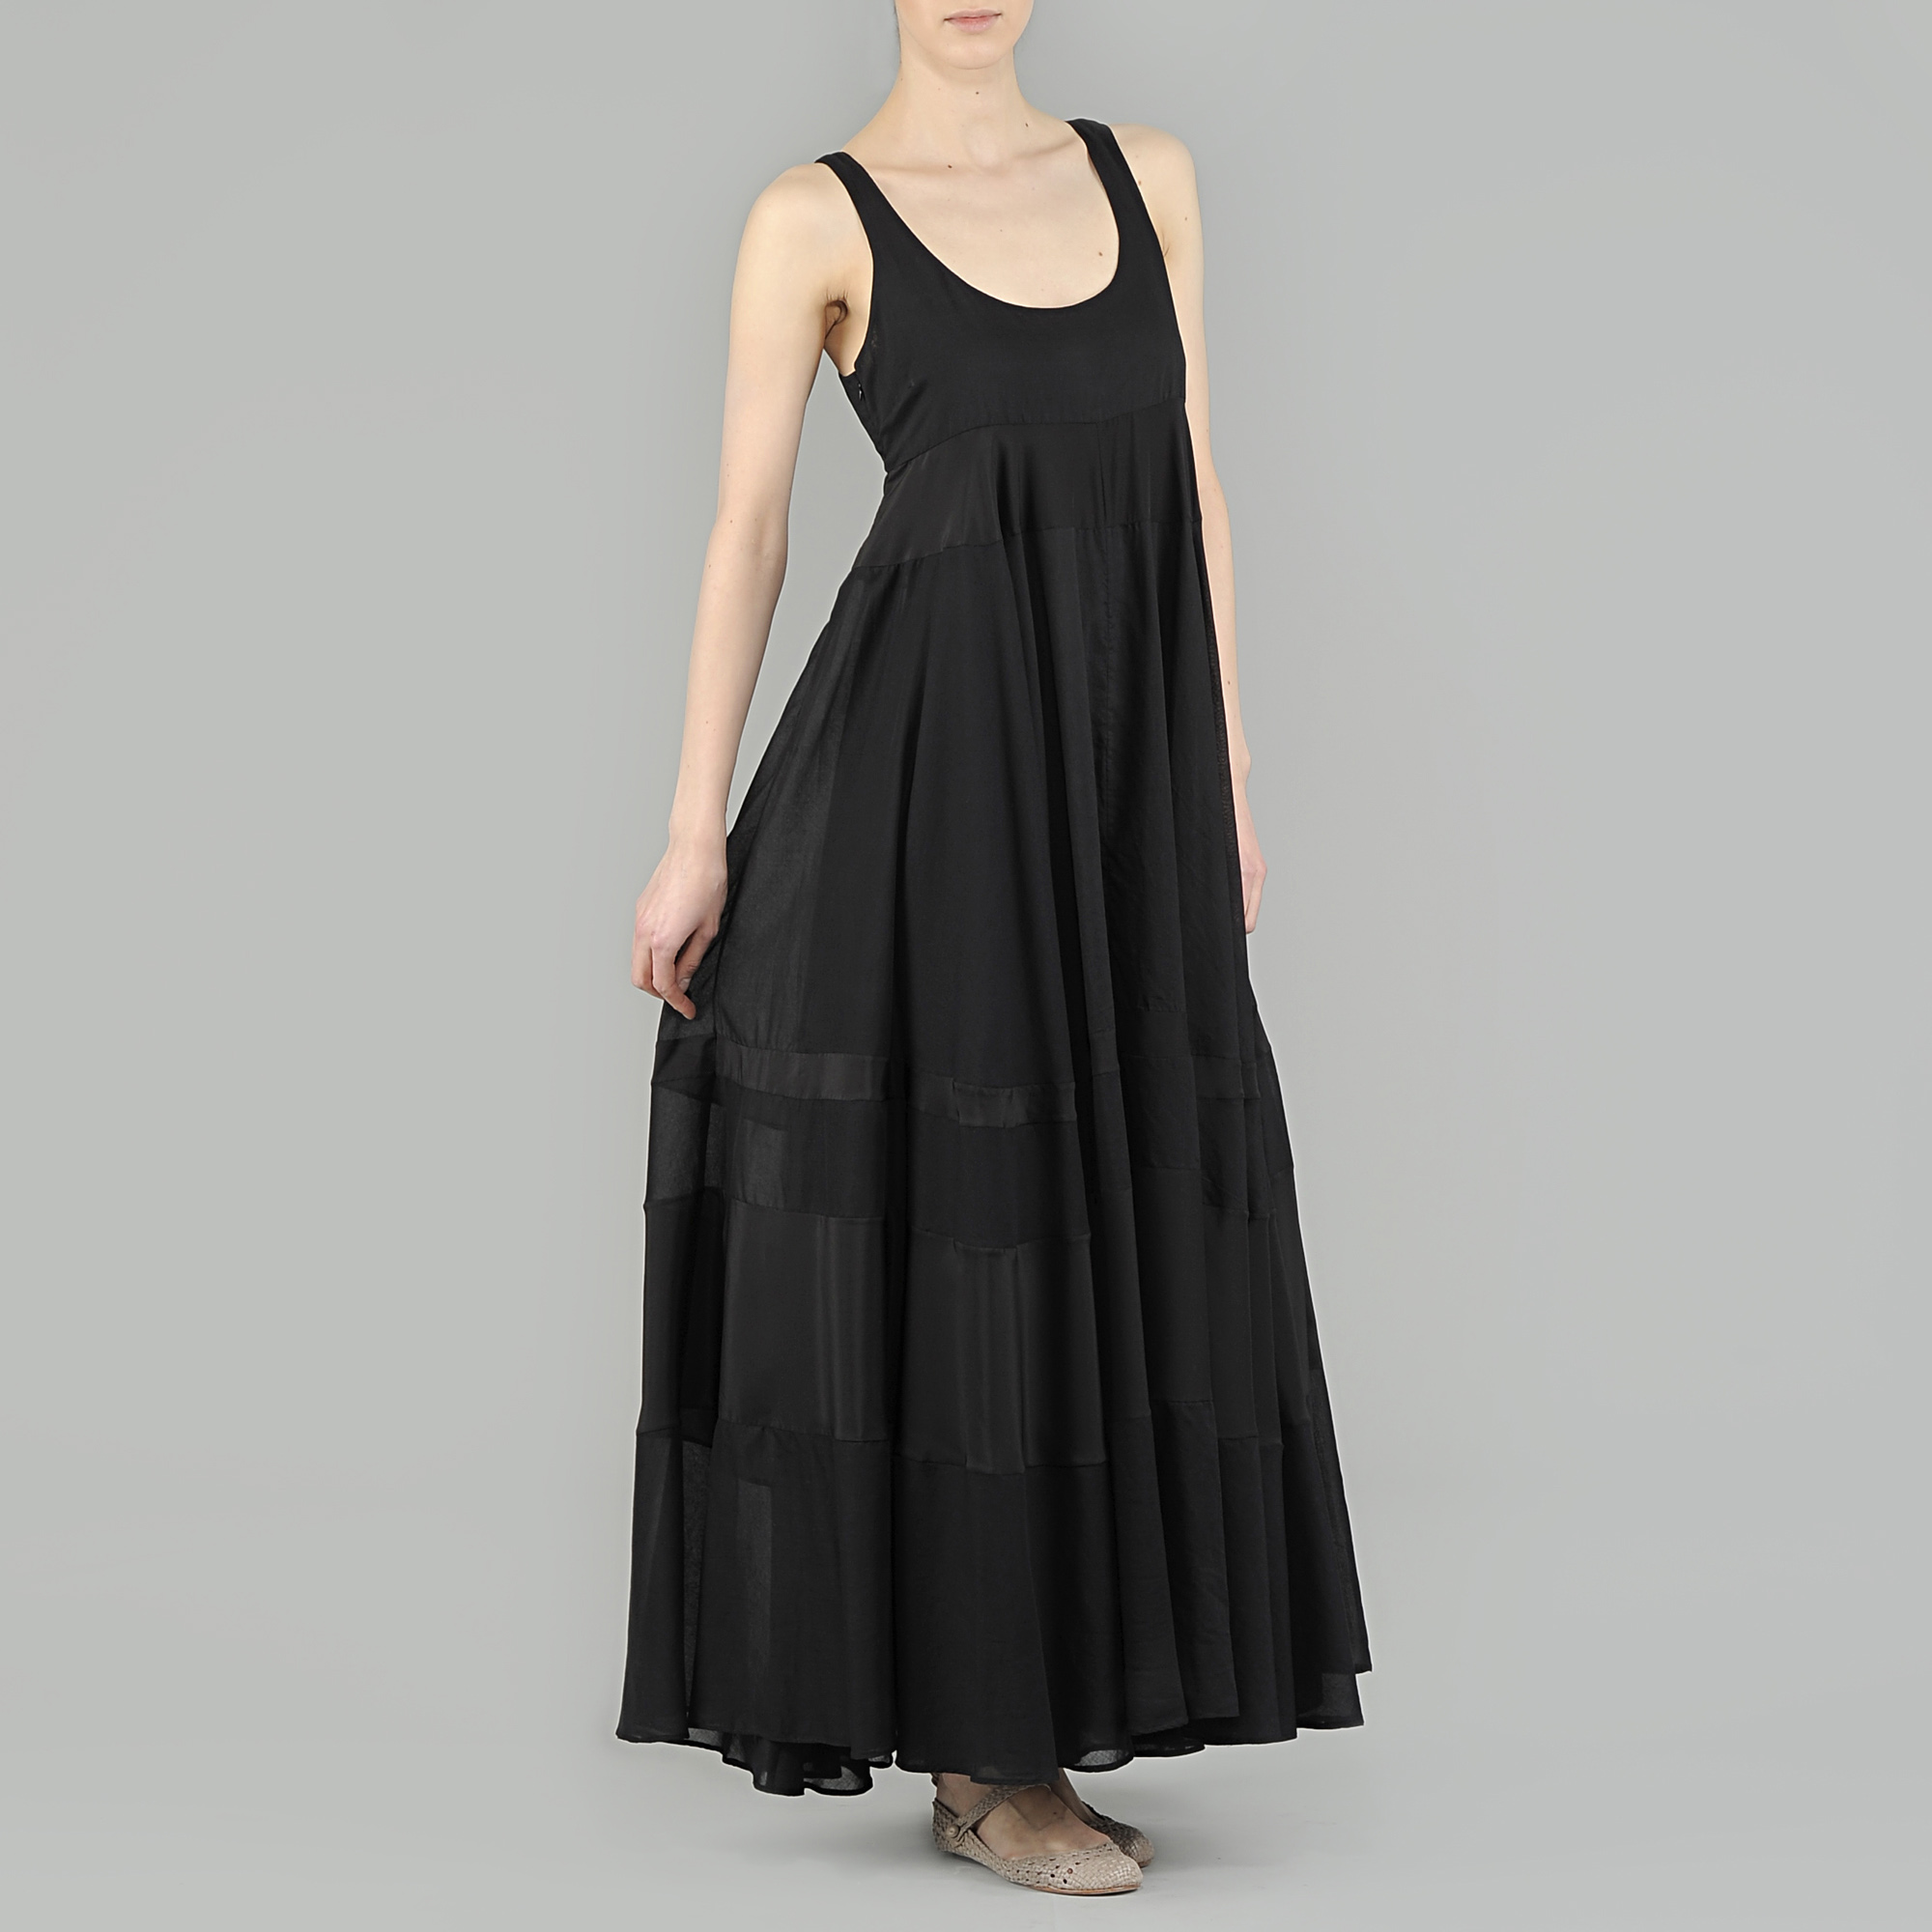 Cotton black maxi dresses forecast dress for everyday in 2019